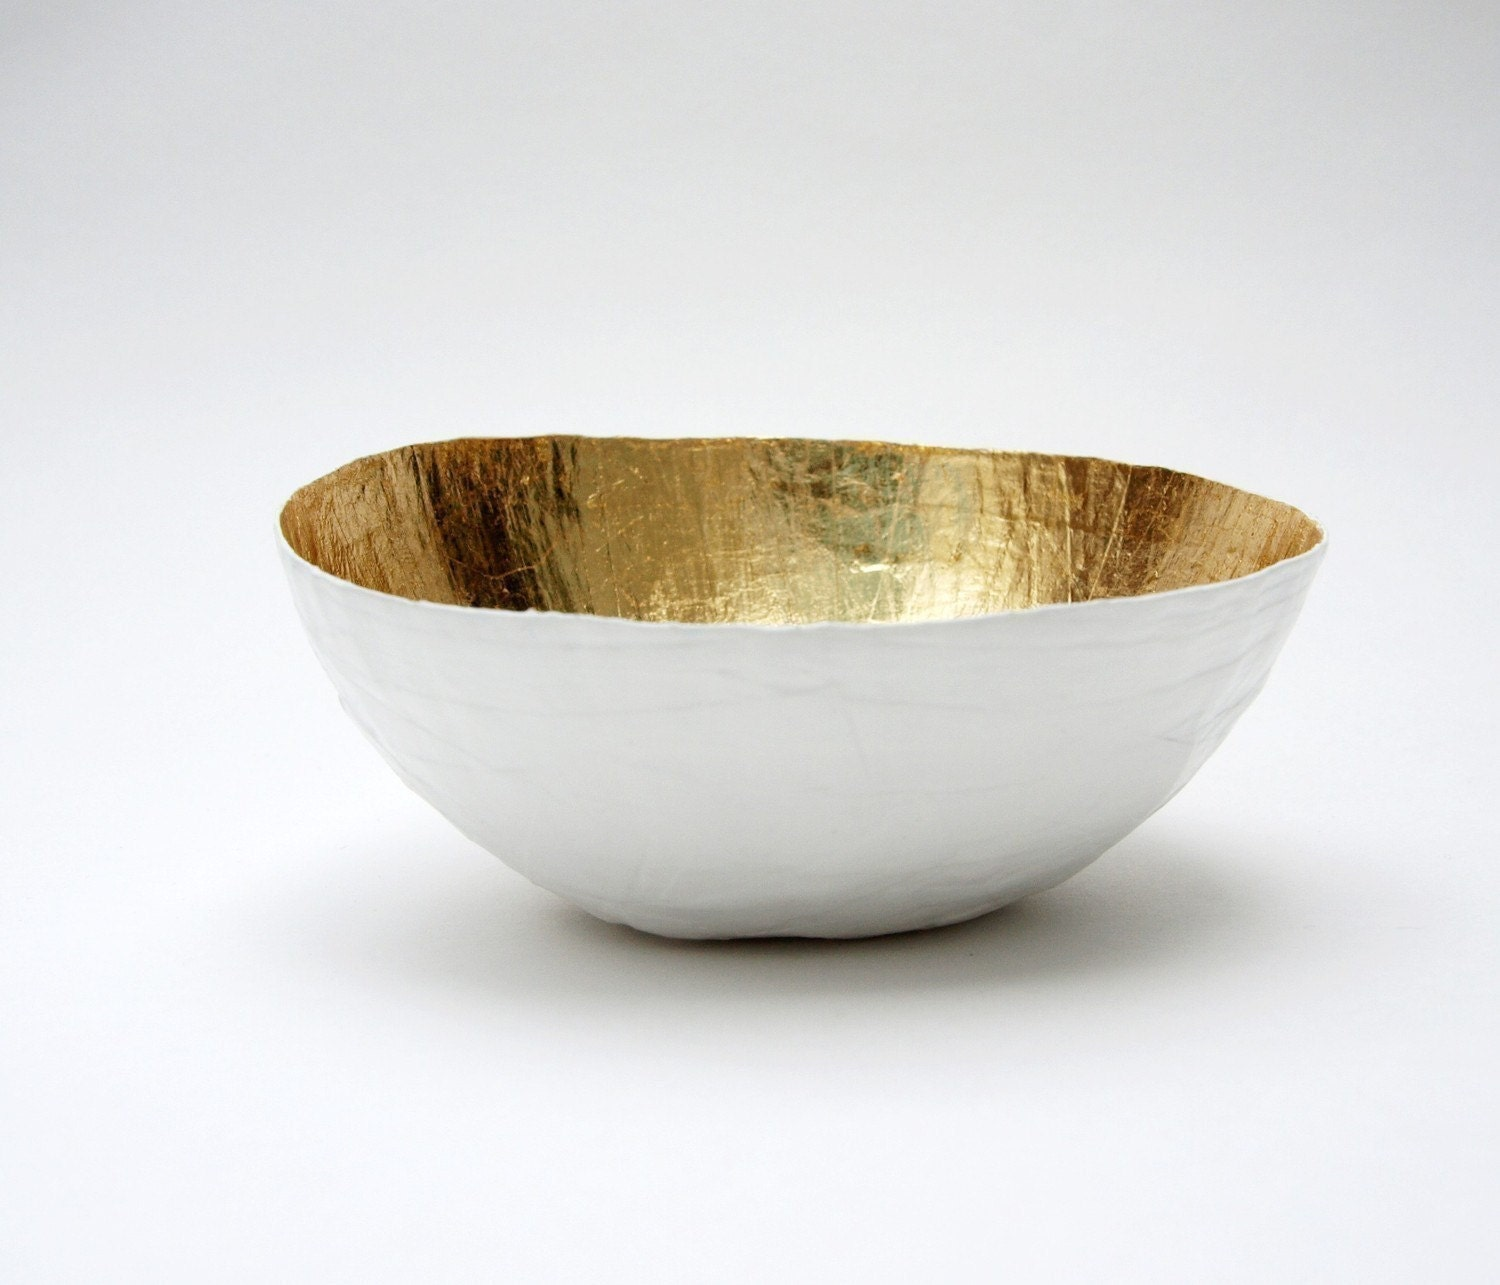 Paper Mache Bowl White and Gold - The Mini